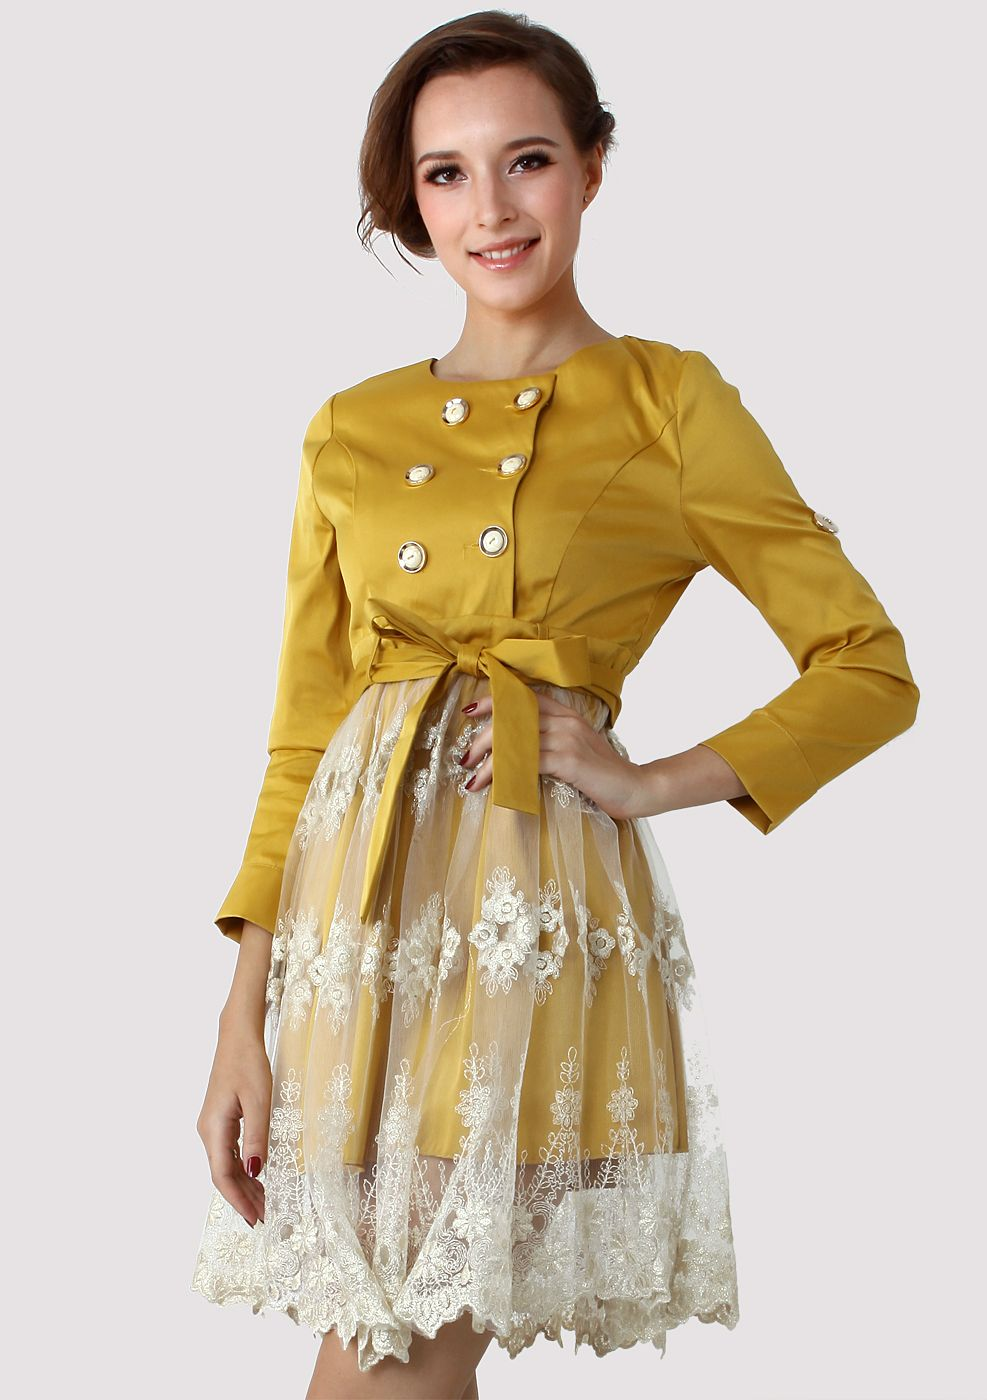 Double Breasted Lace Skirt Dress in Mustard....would wear with a pencil skirt...